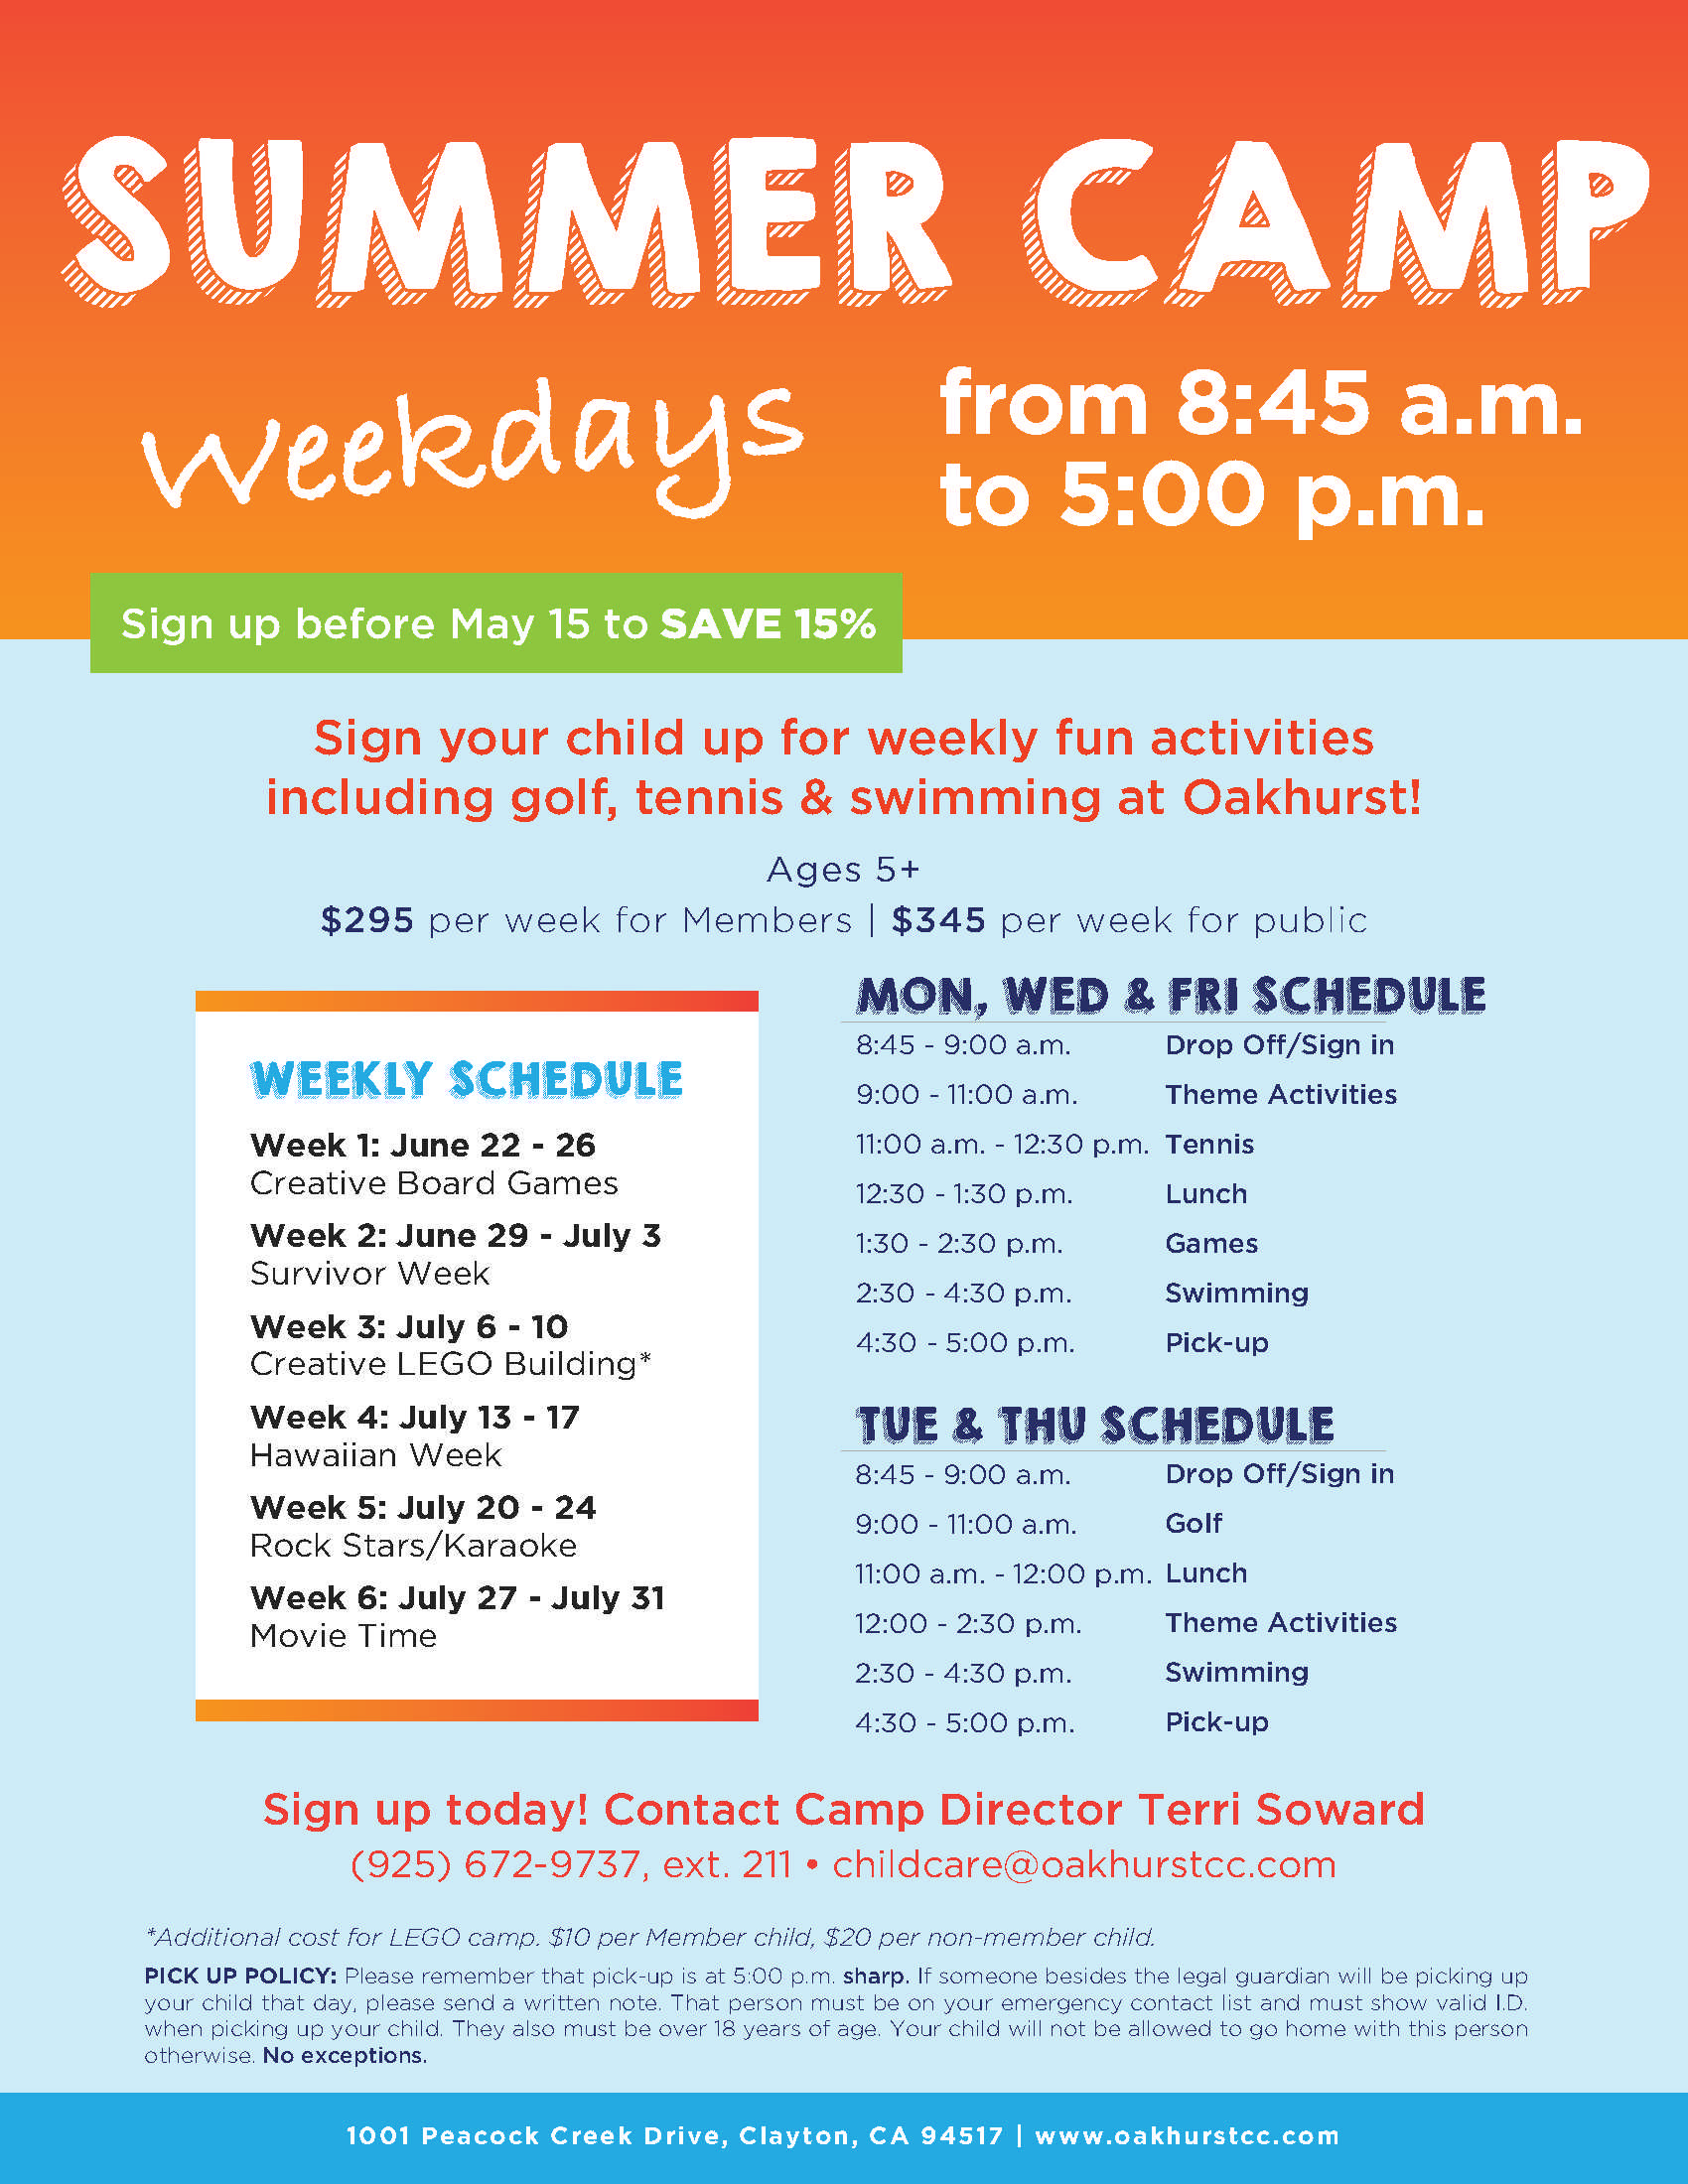 Oakhurst Summer Camp Flyer Template Kids Pinterest Flyer - Summer camp brochure template